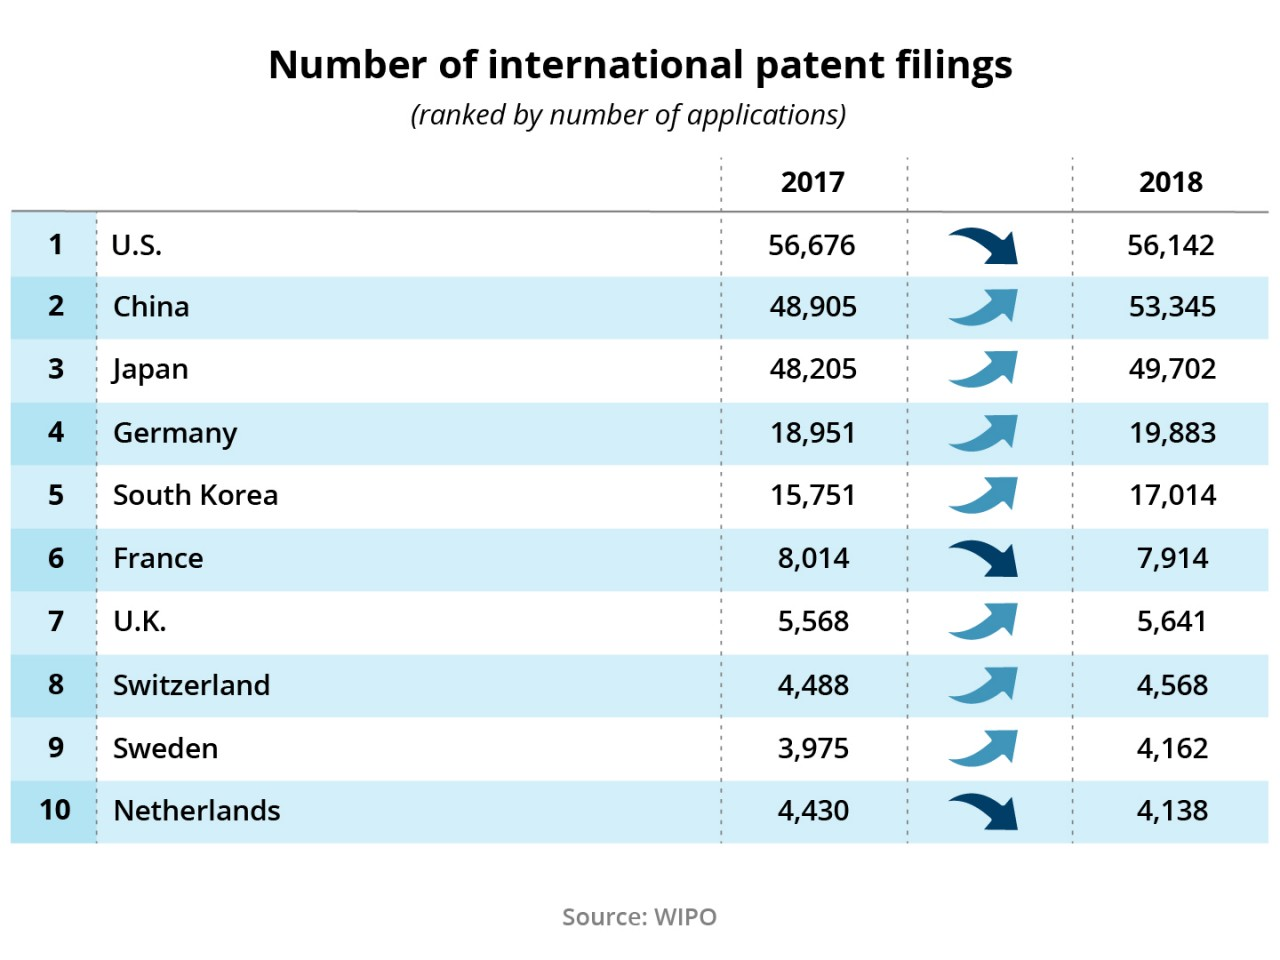 Figure 8: Number of international patent filings